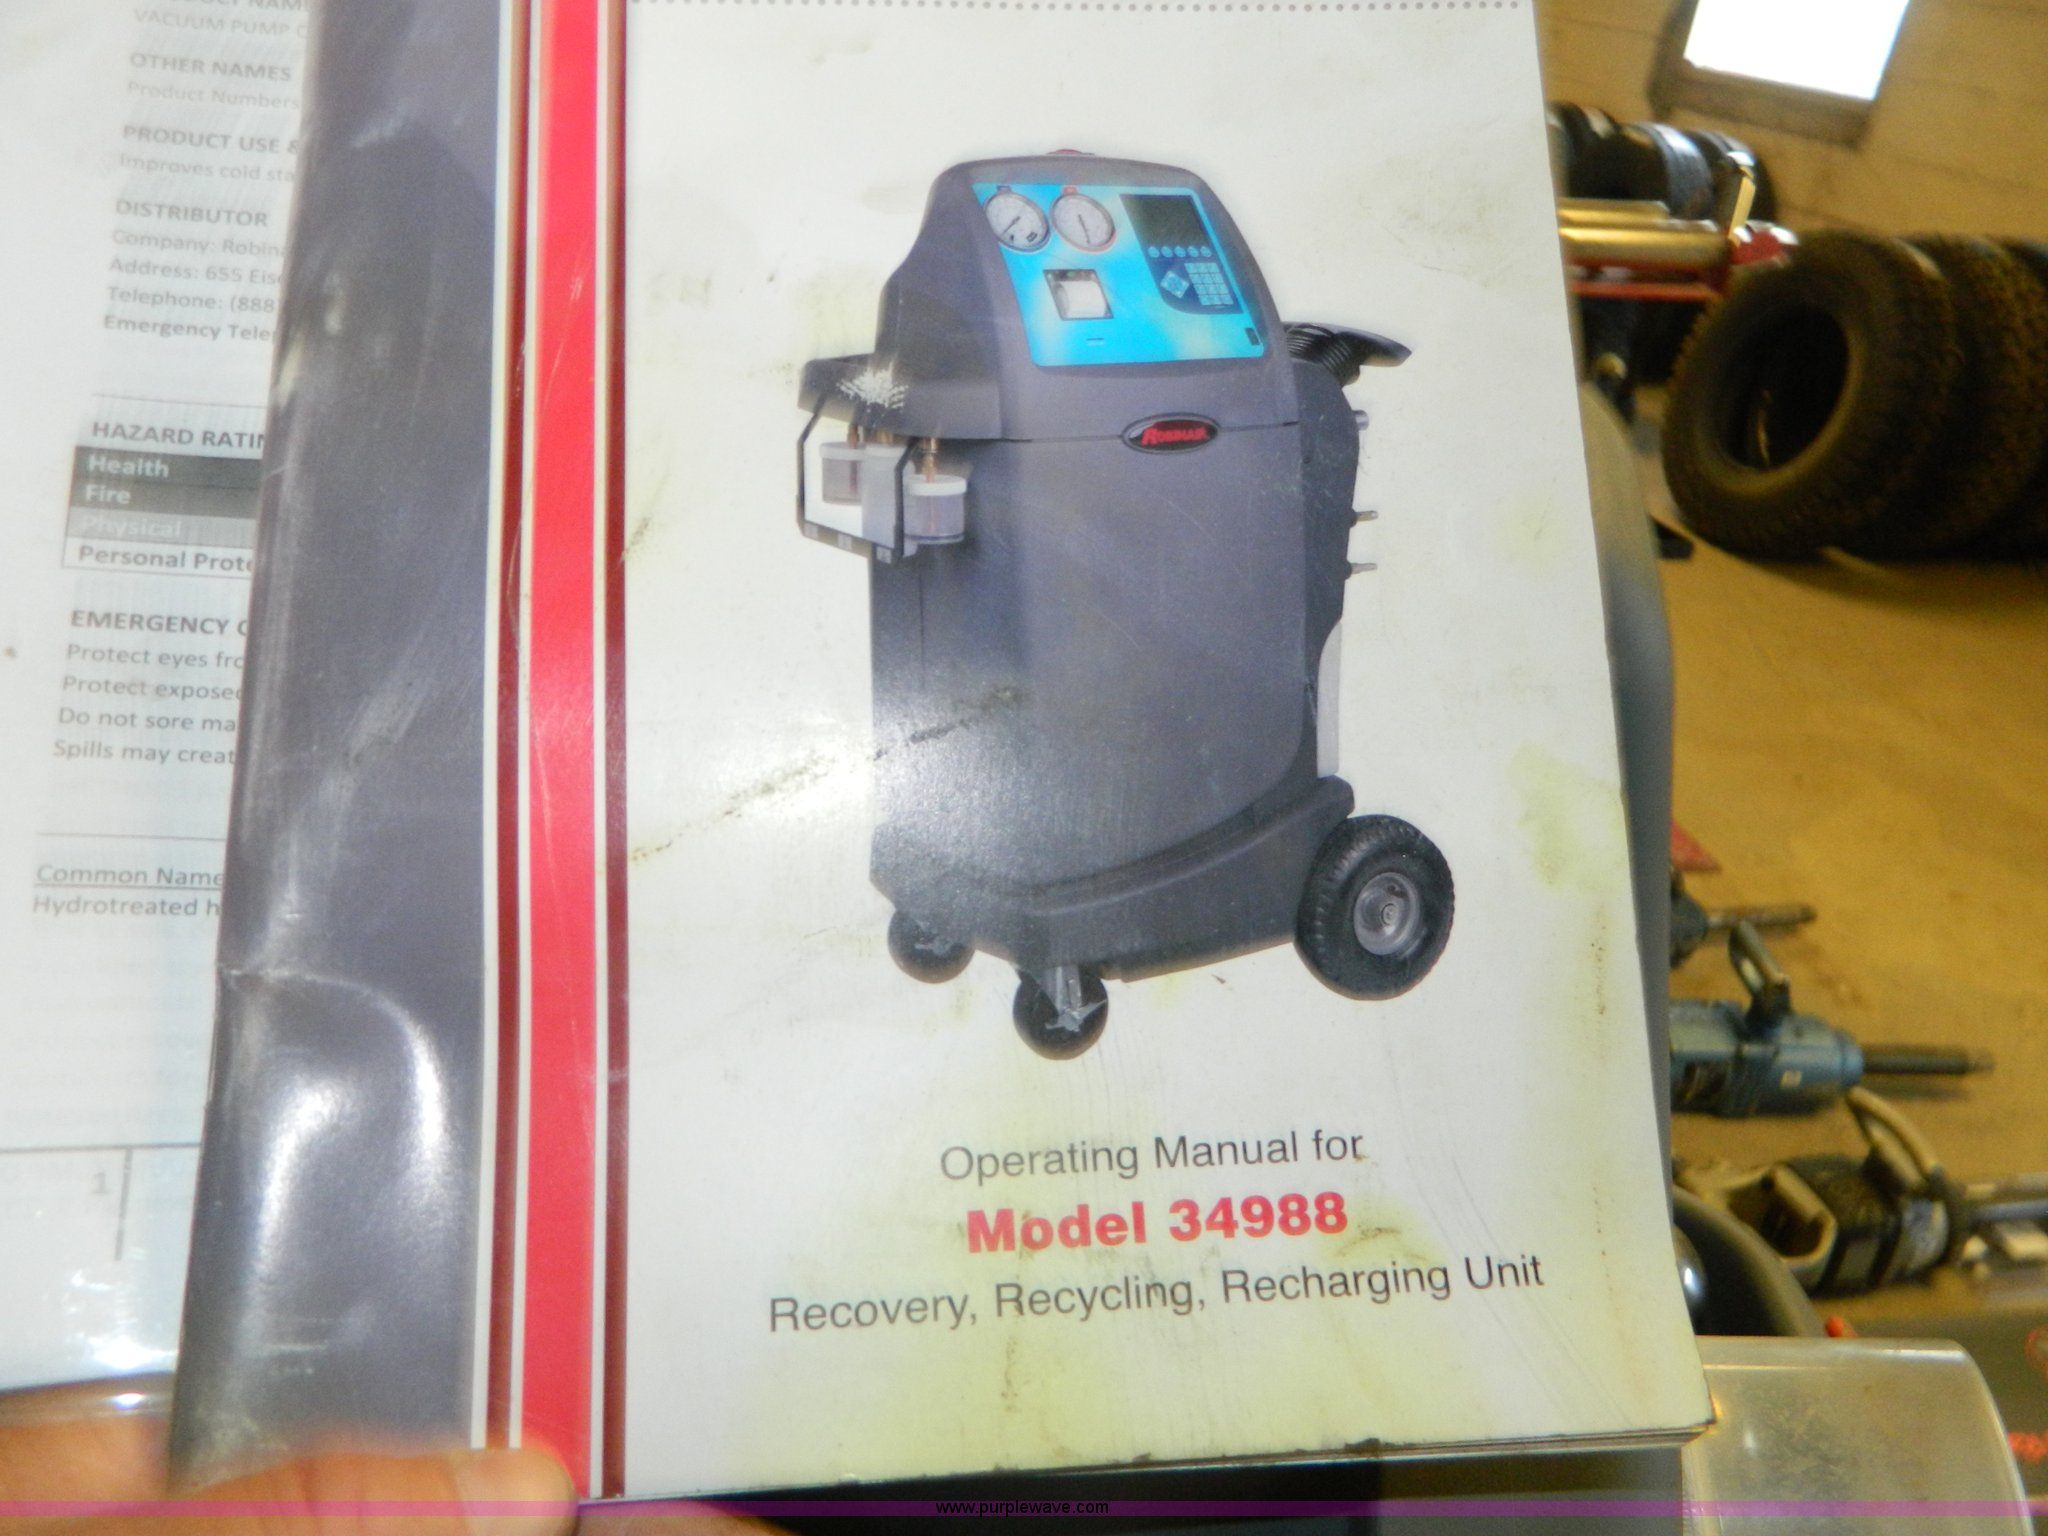 Cool-tech 34288 a/c recover, recycle, recharge machine | otc tools.